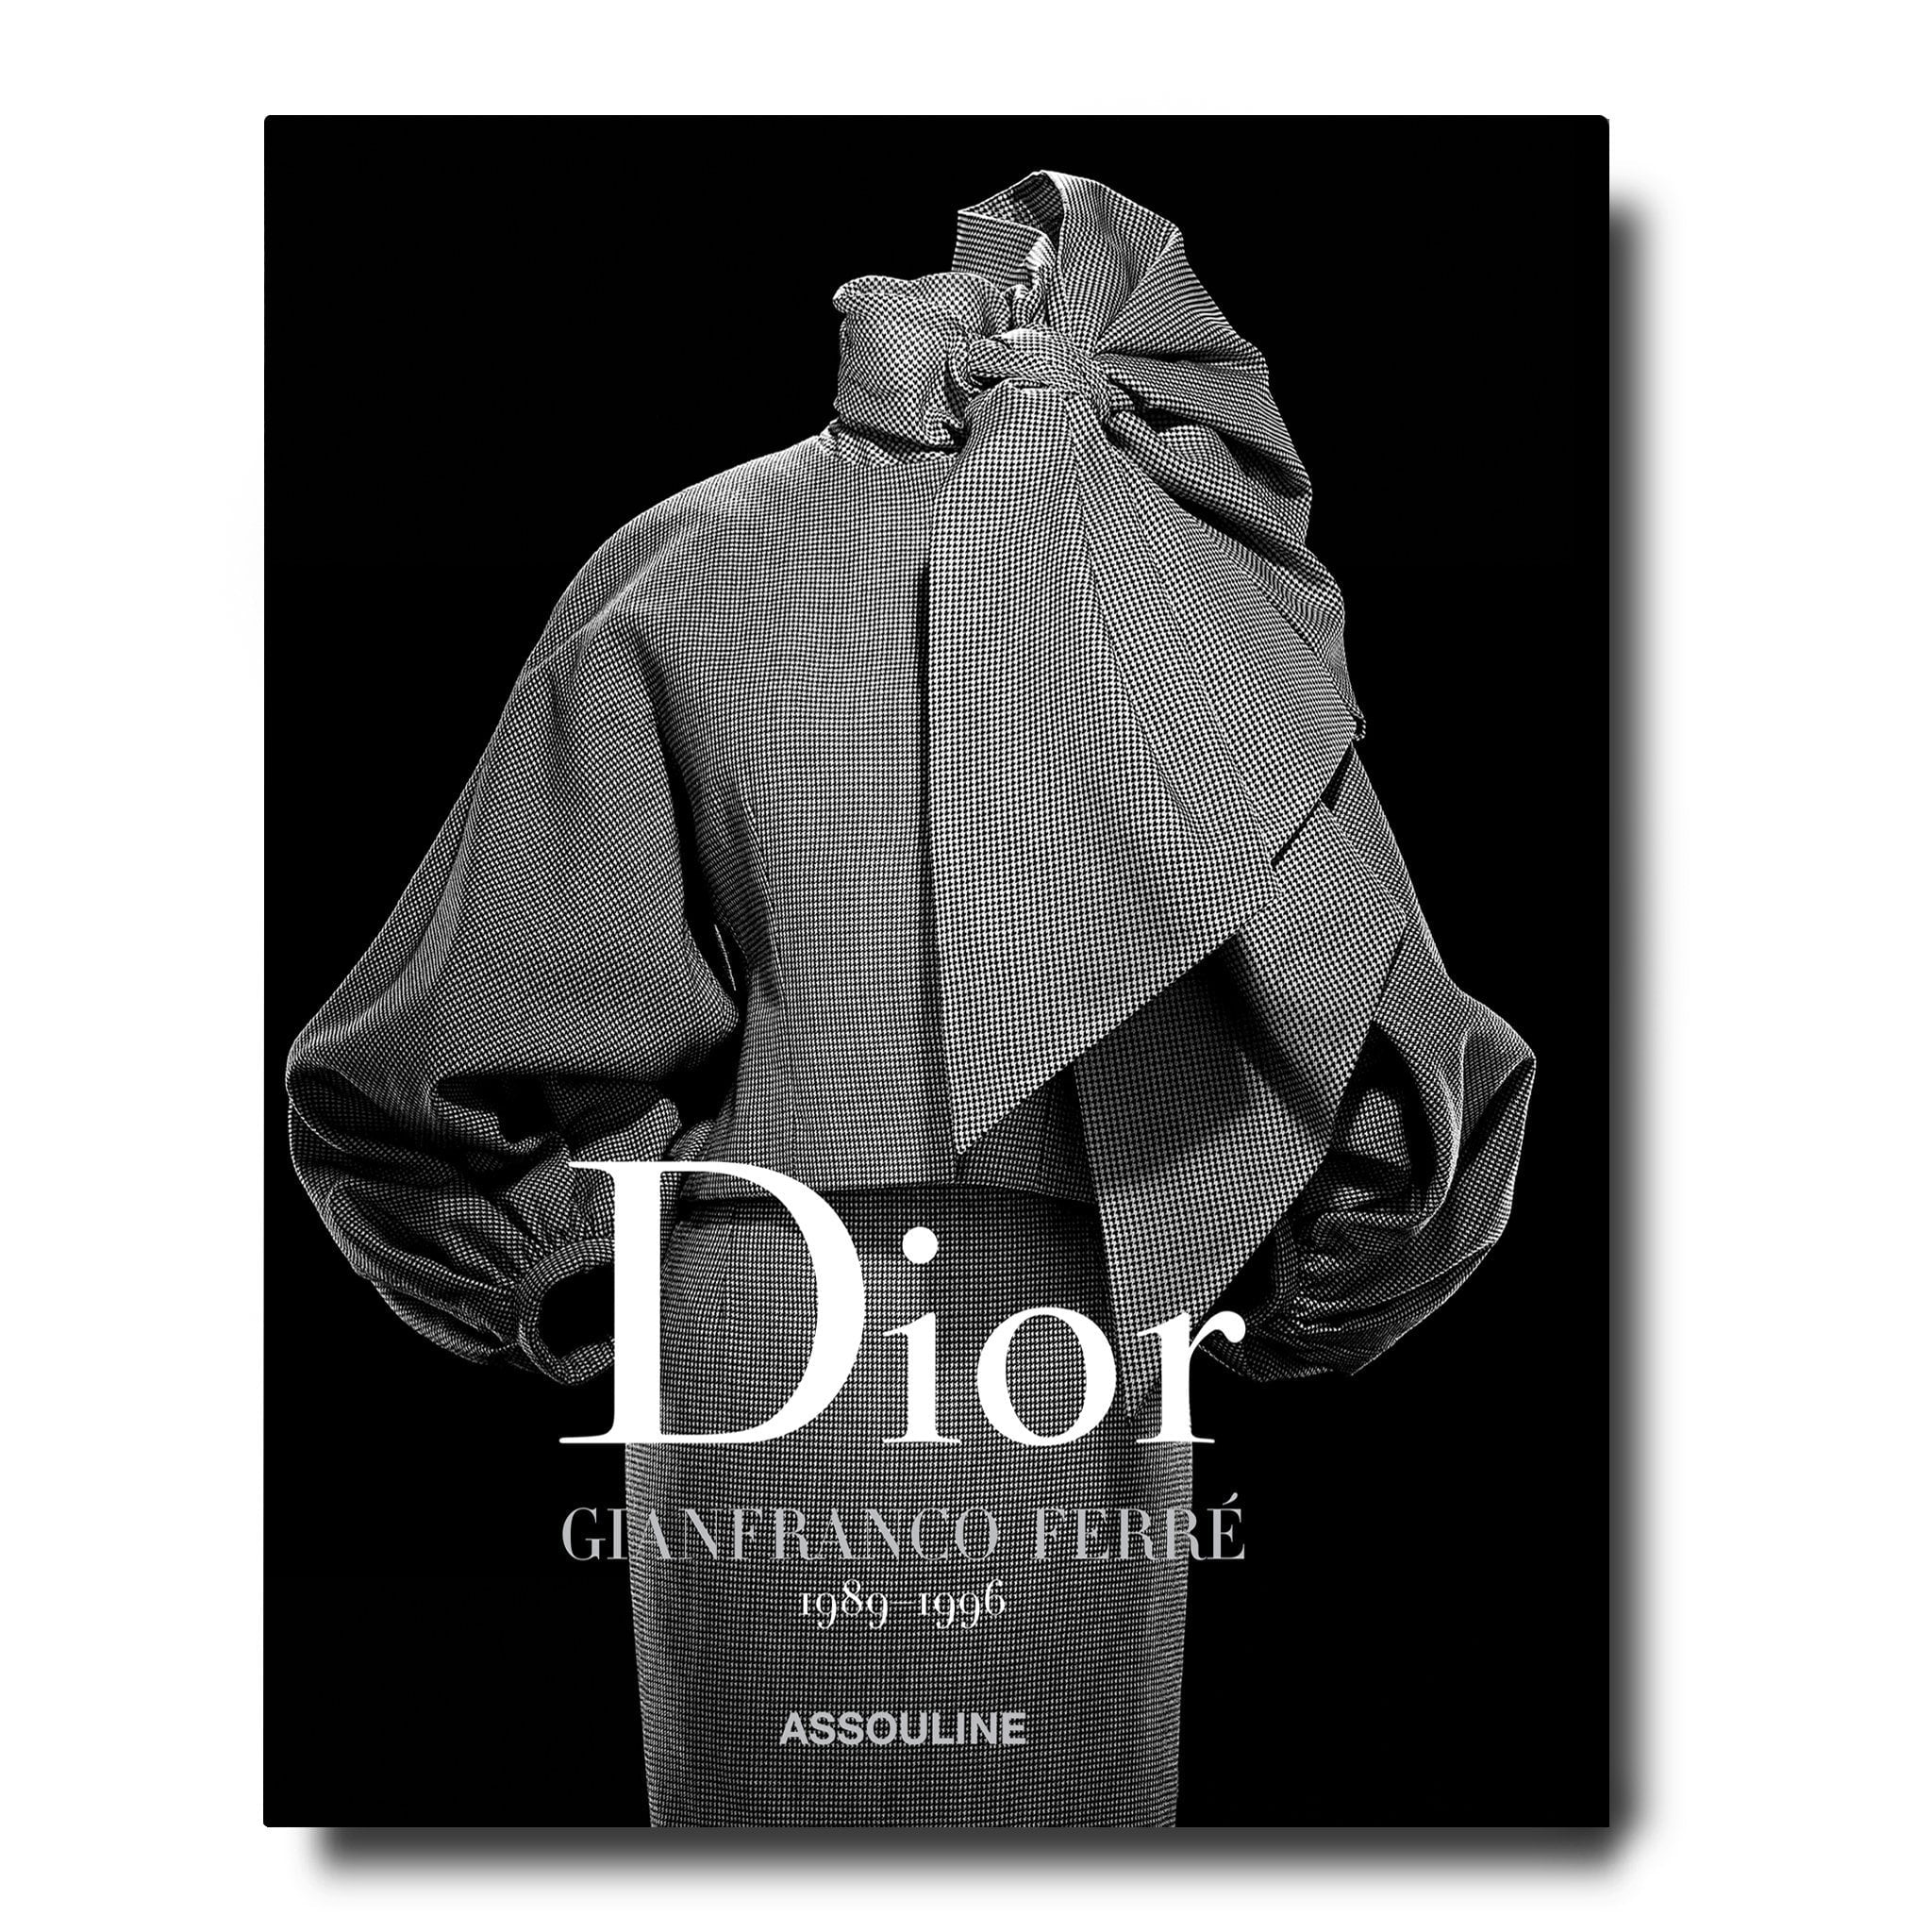 Dior by Gianfranco Ferré (French)